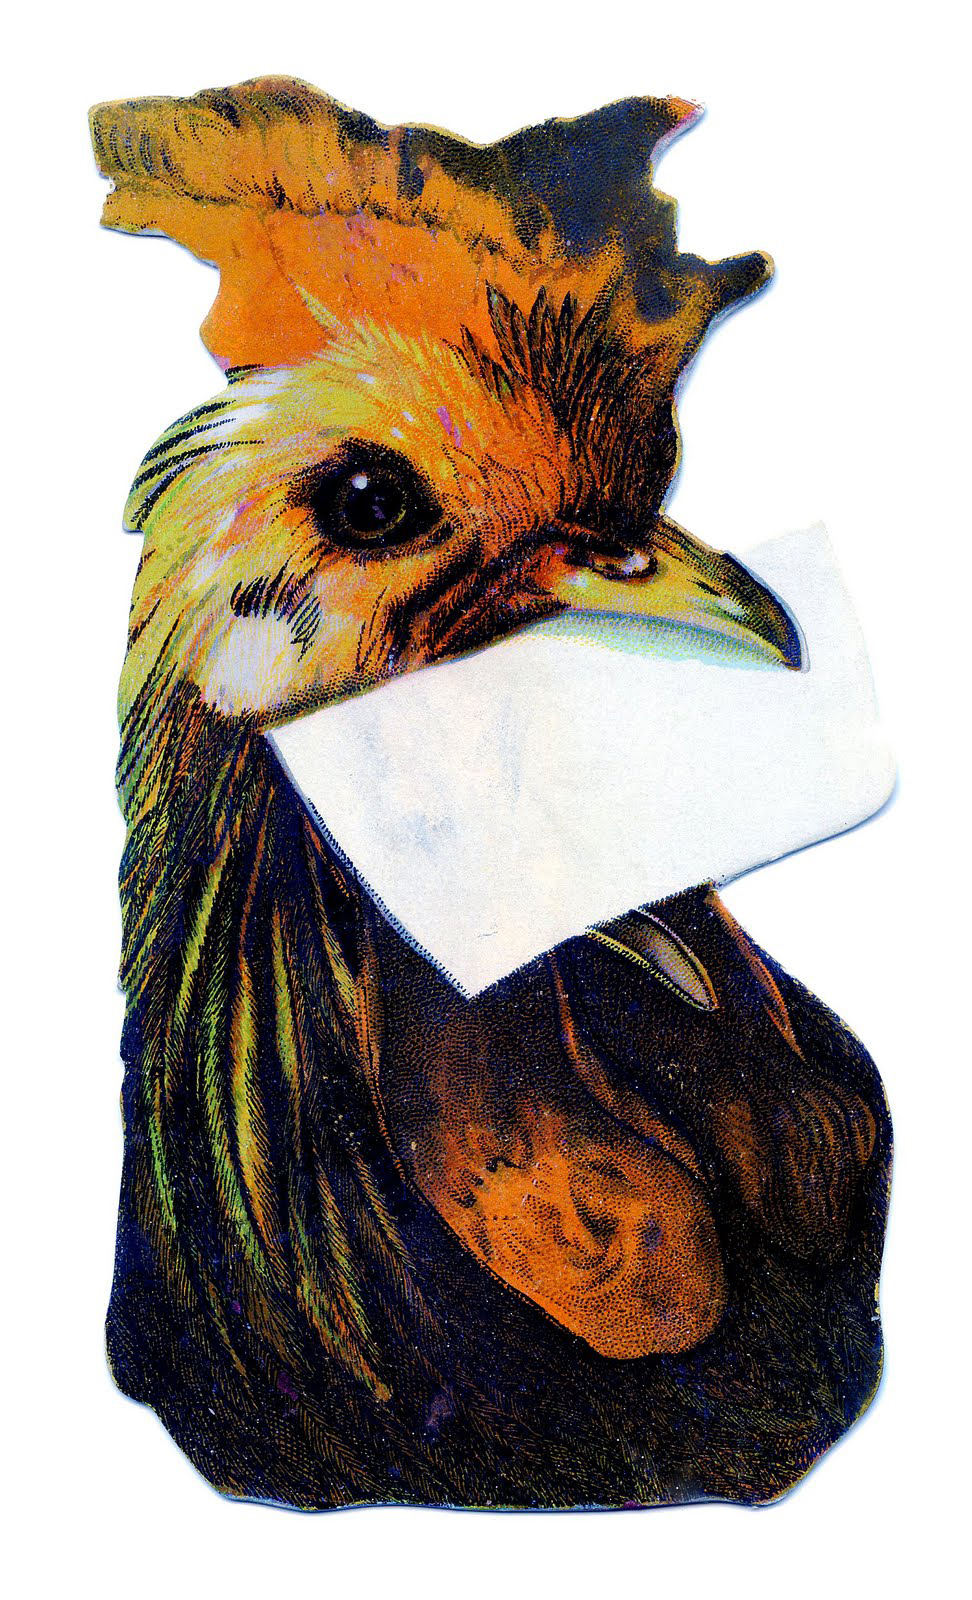 1a-rooster-graphicsfairy010